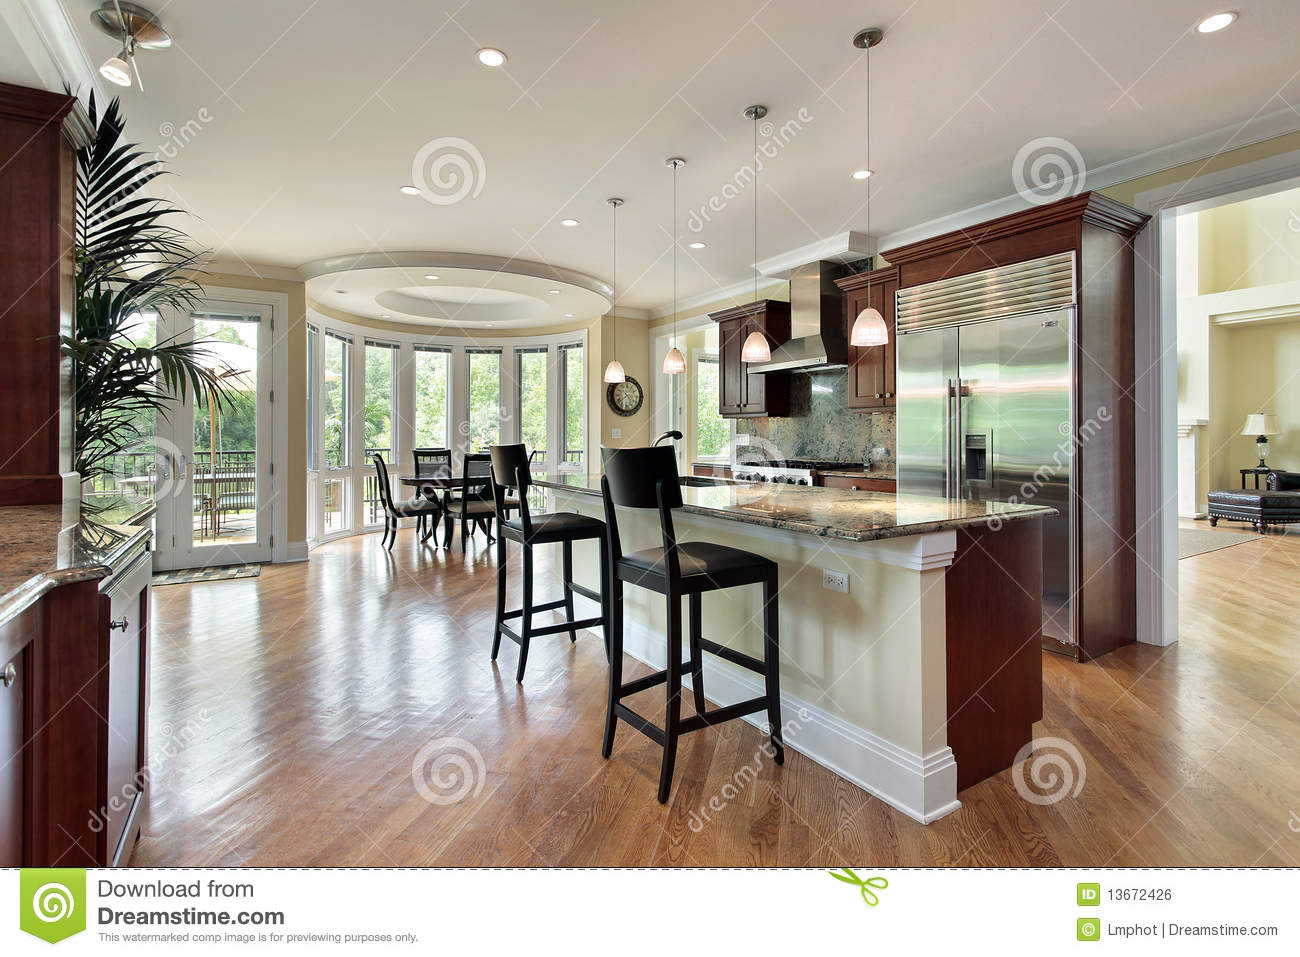 Kitchen With Curved Eating Area Royalty Free Stock Image Image 13672426